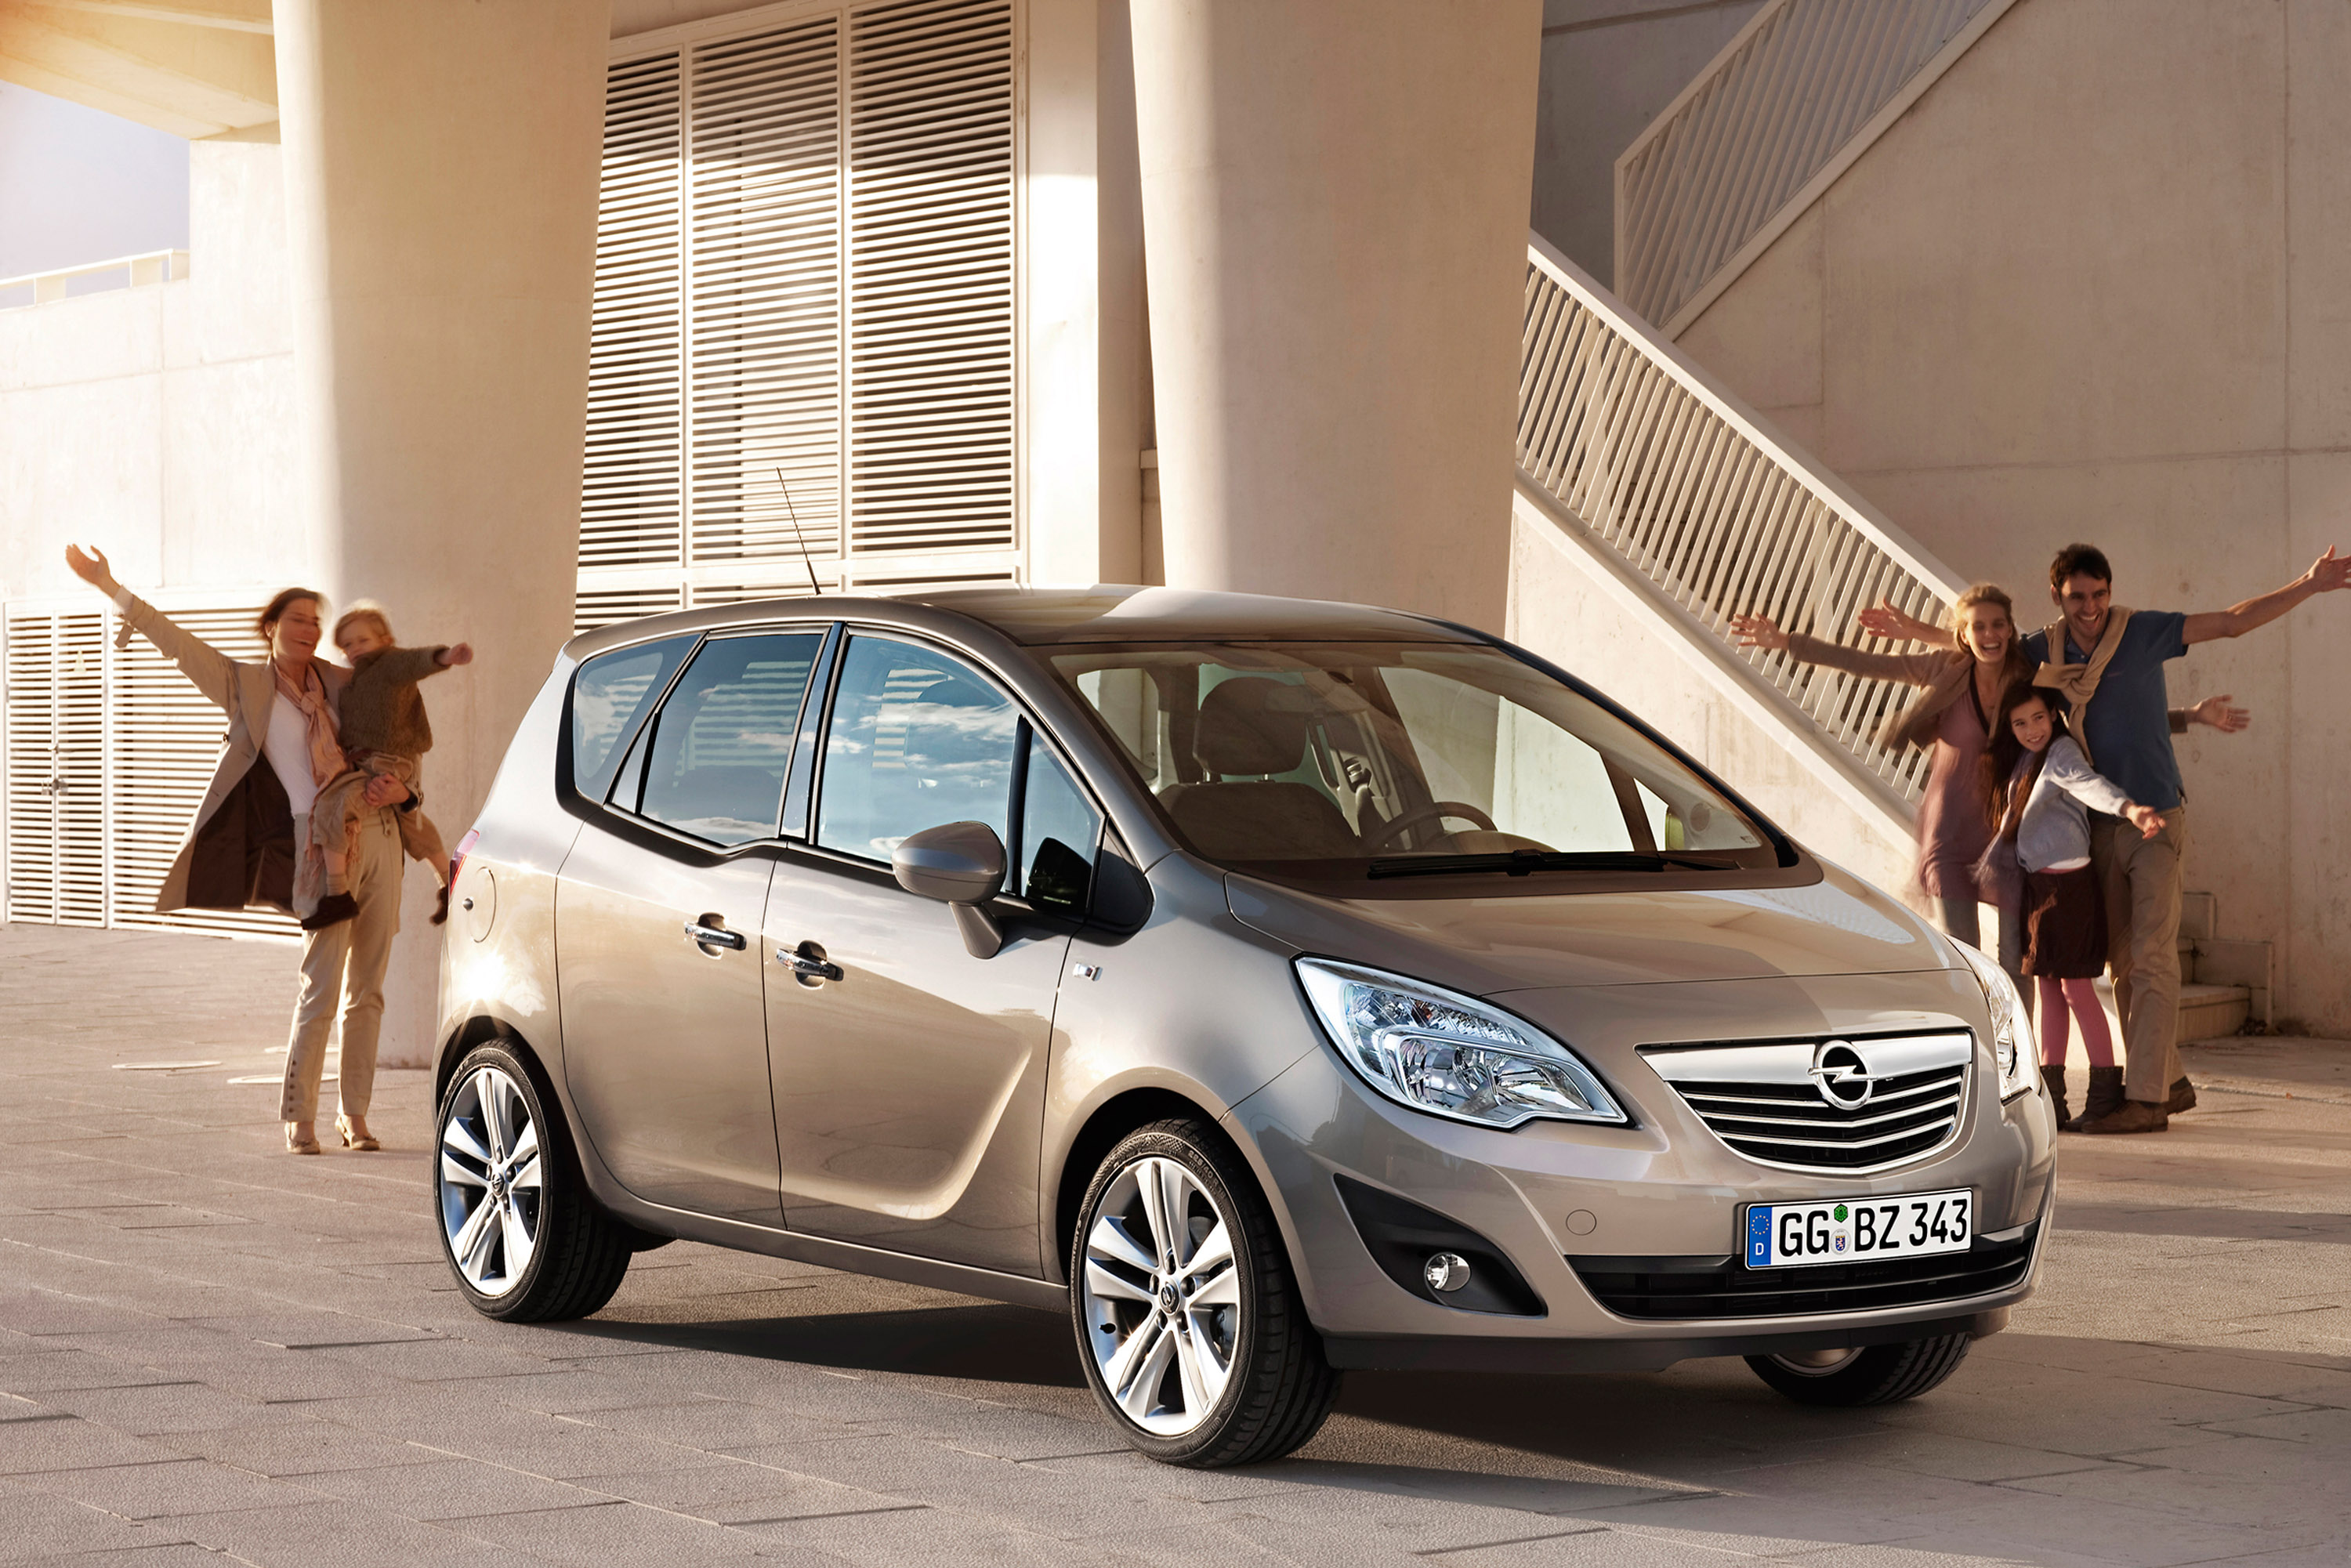 2011 opel meriva flexibility at the highest level 2011 opel meriva sciox Image collections